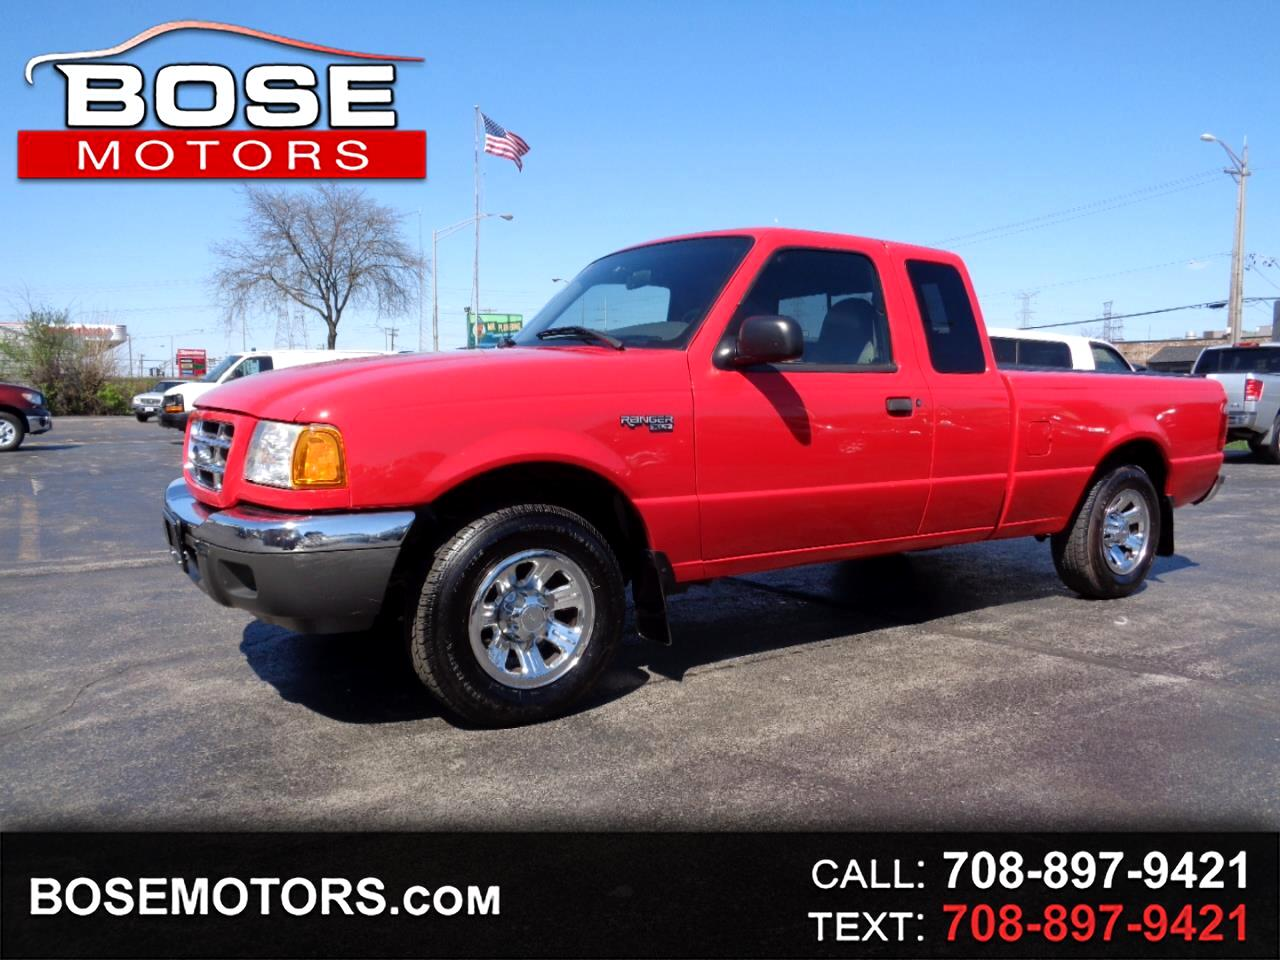 2001 Ford Ranger XLT SuperCab 4.0 w/Appearance 2WD